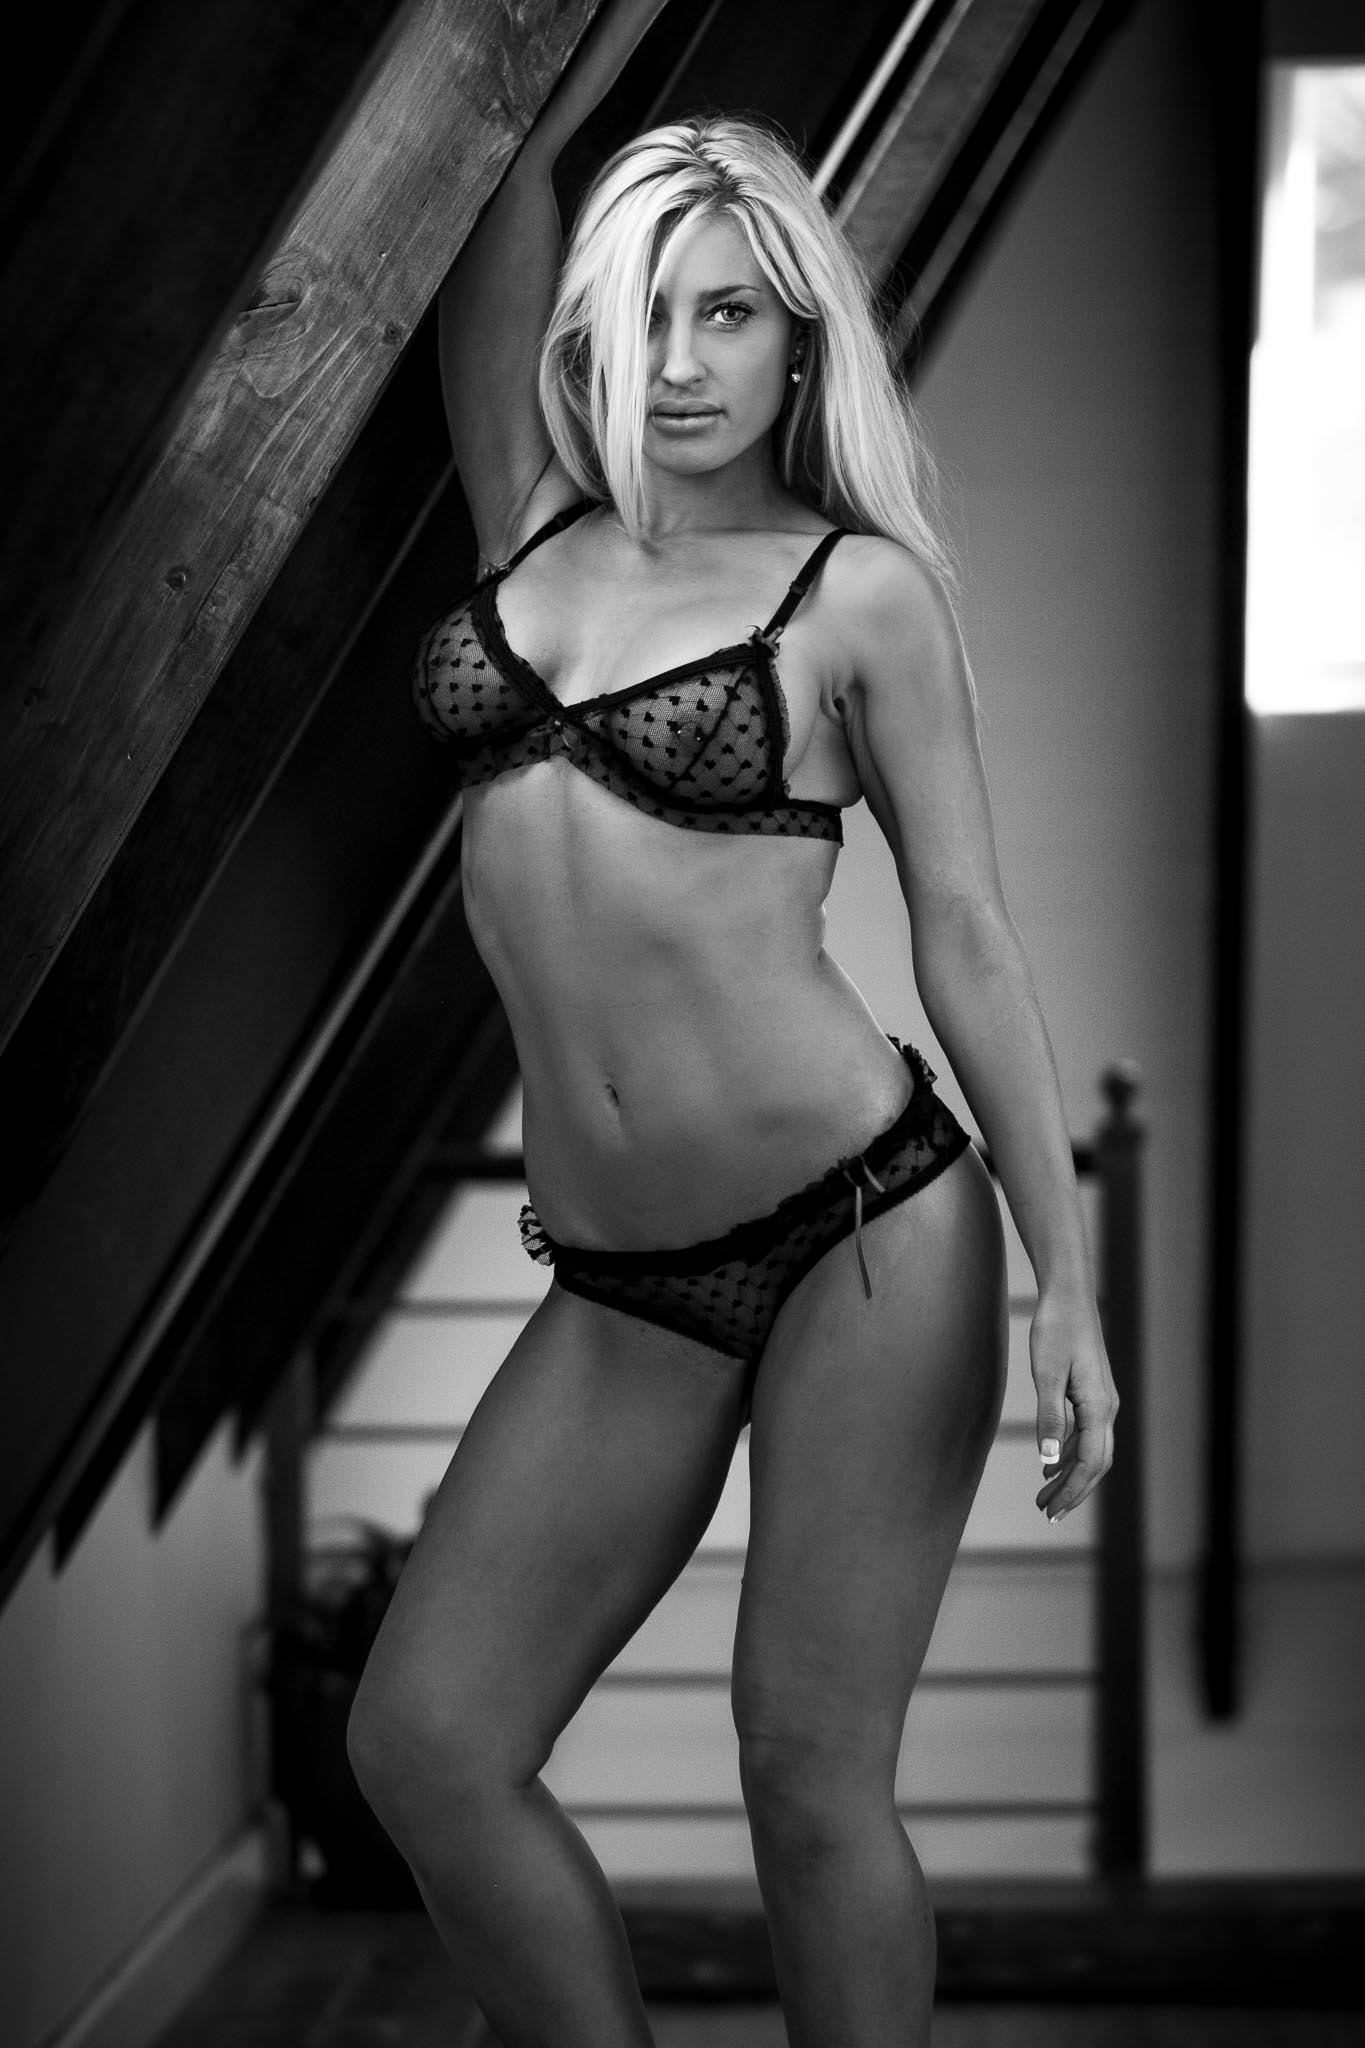 boudoir photography hallway black and white